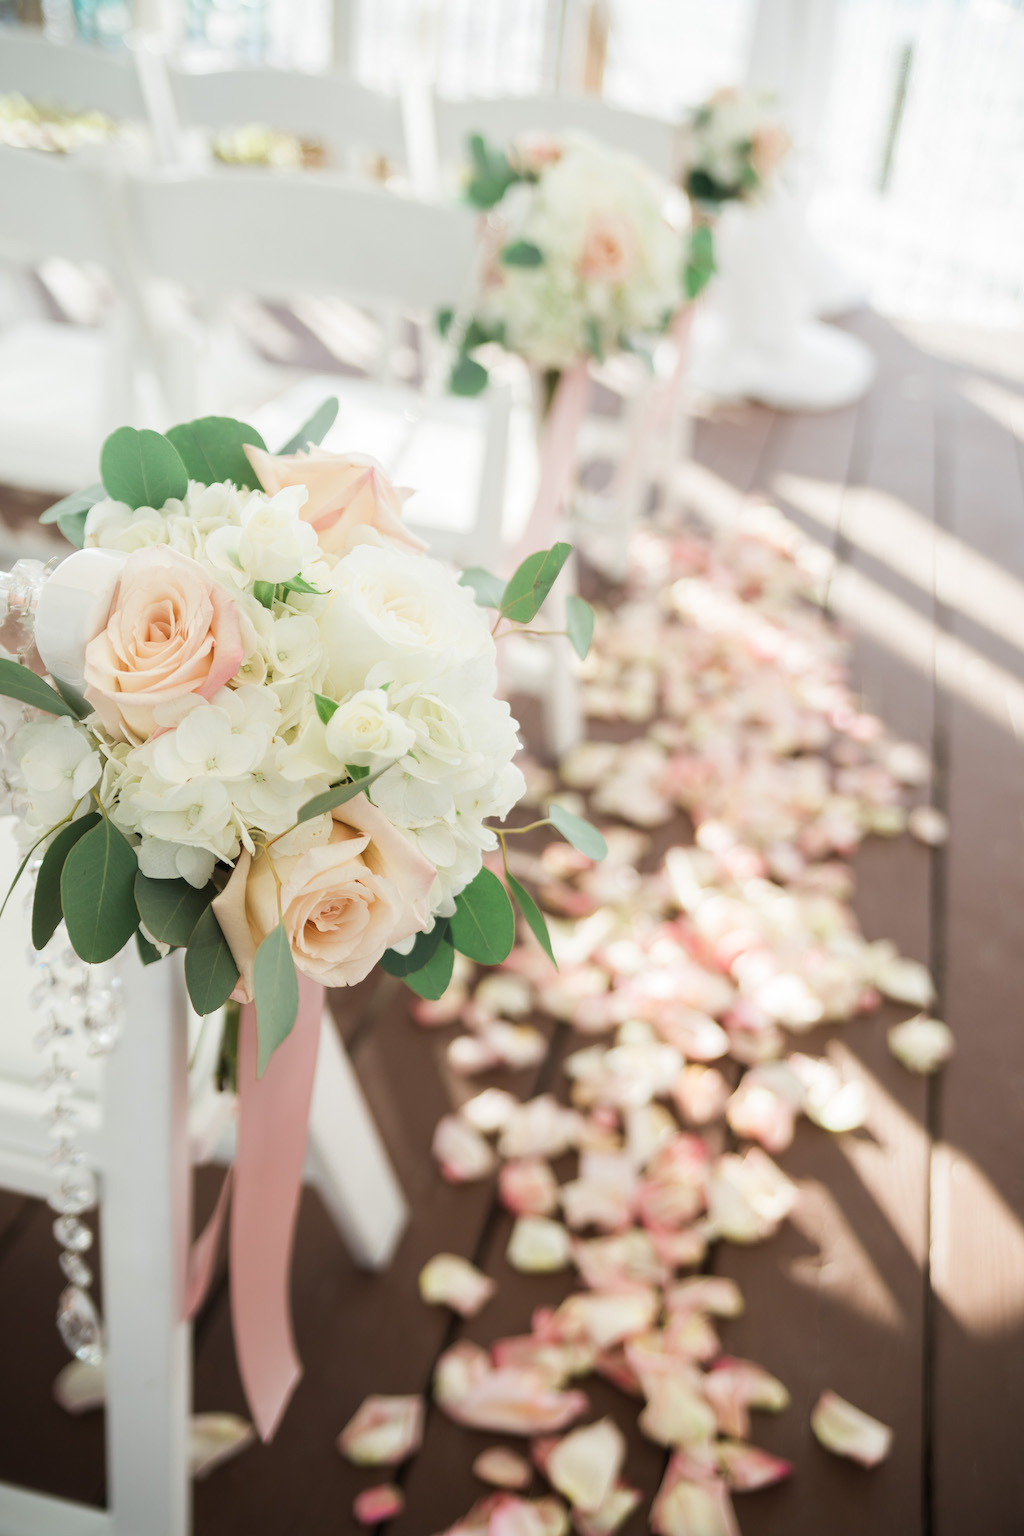 Outdoor Whimsical Beach Deck Wedding Ceremony Decor with White Folding Chairs with Blush Rose and White Hydrangea with Greenery and Long Pink Ribbon and Jewels, Pink Rose Petal Aisle